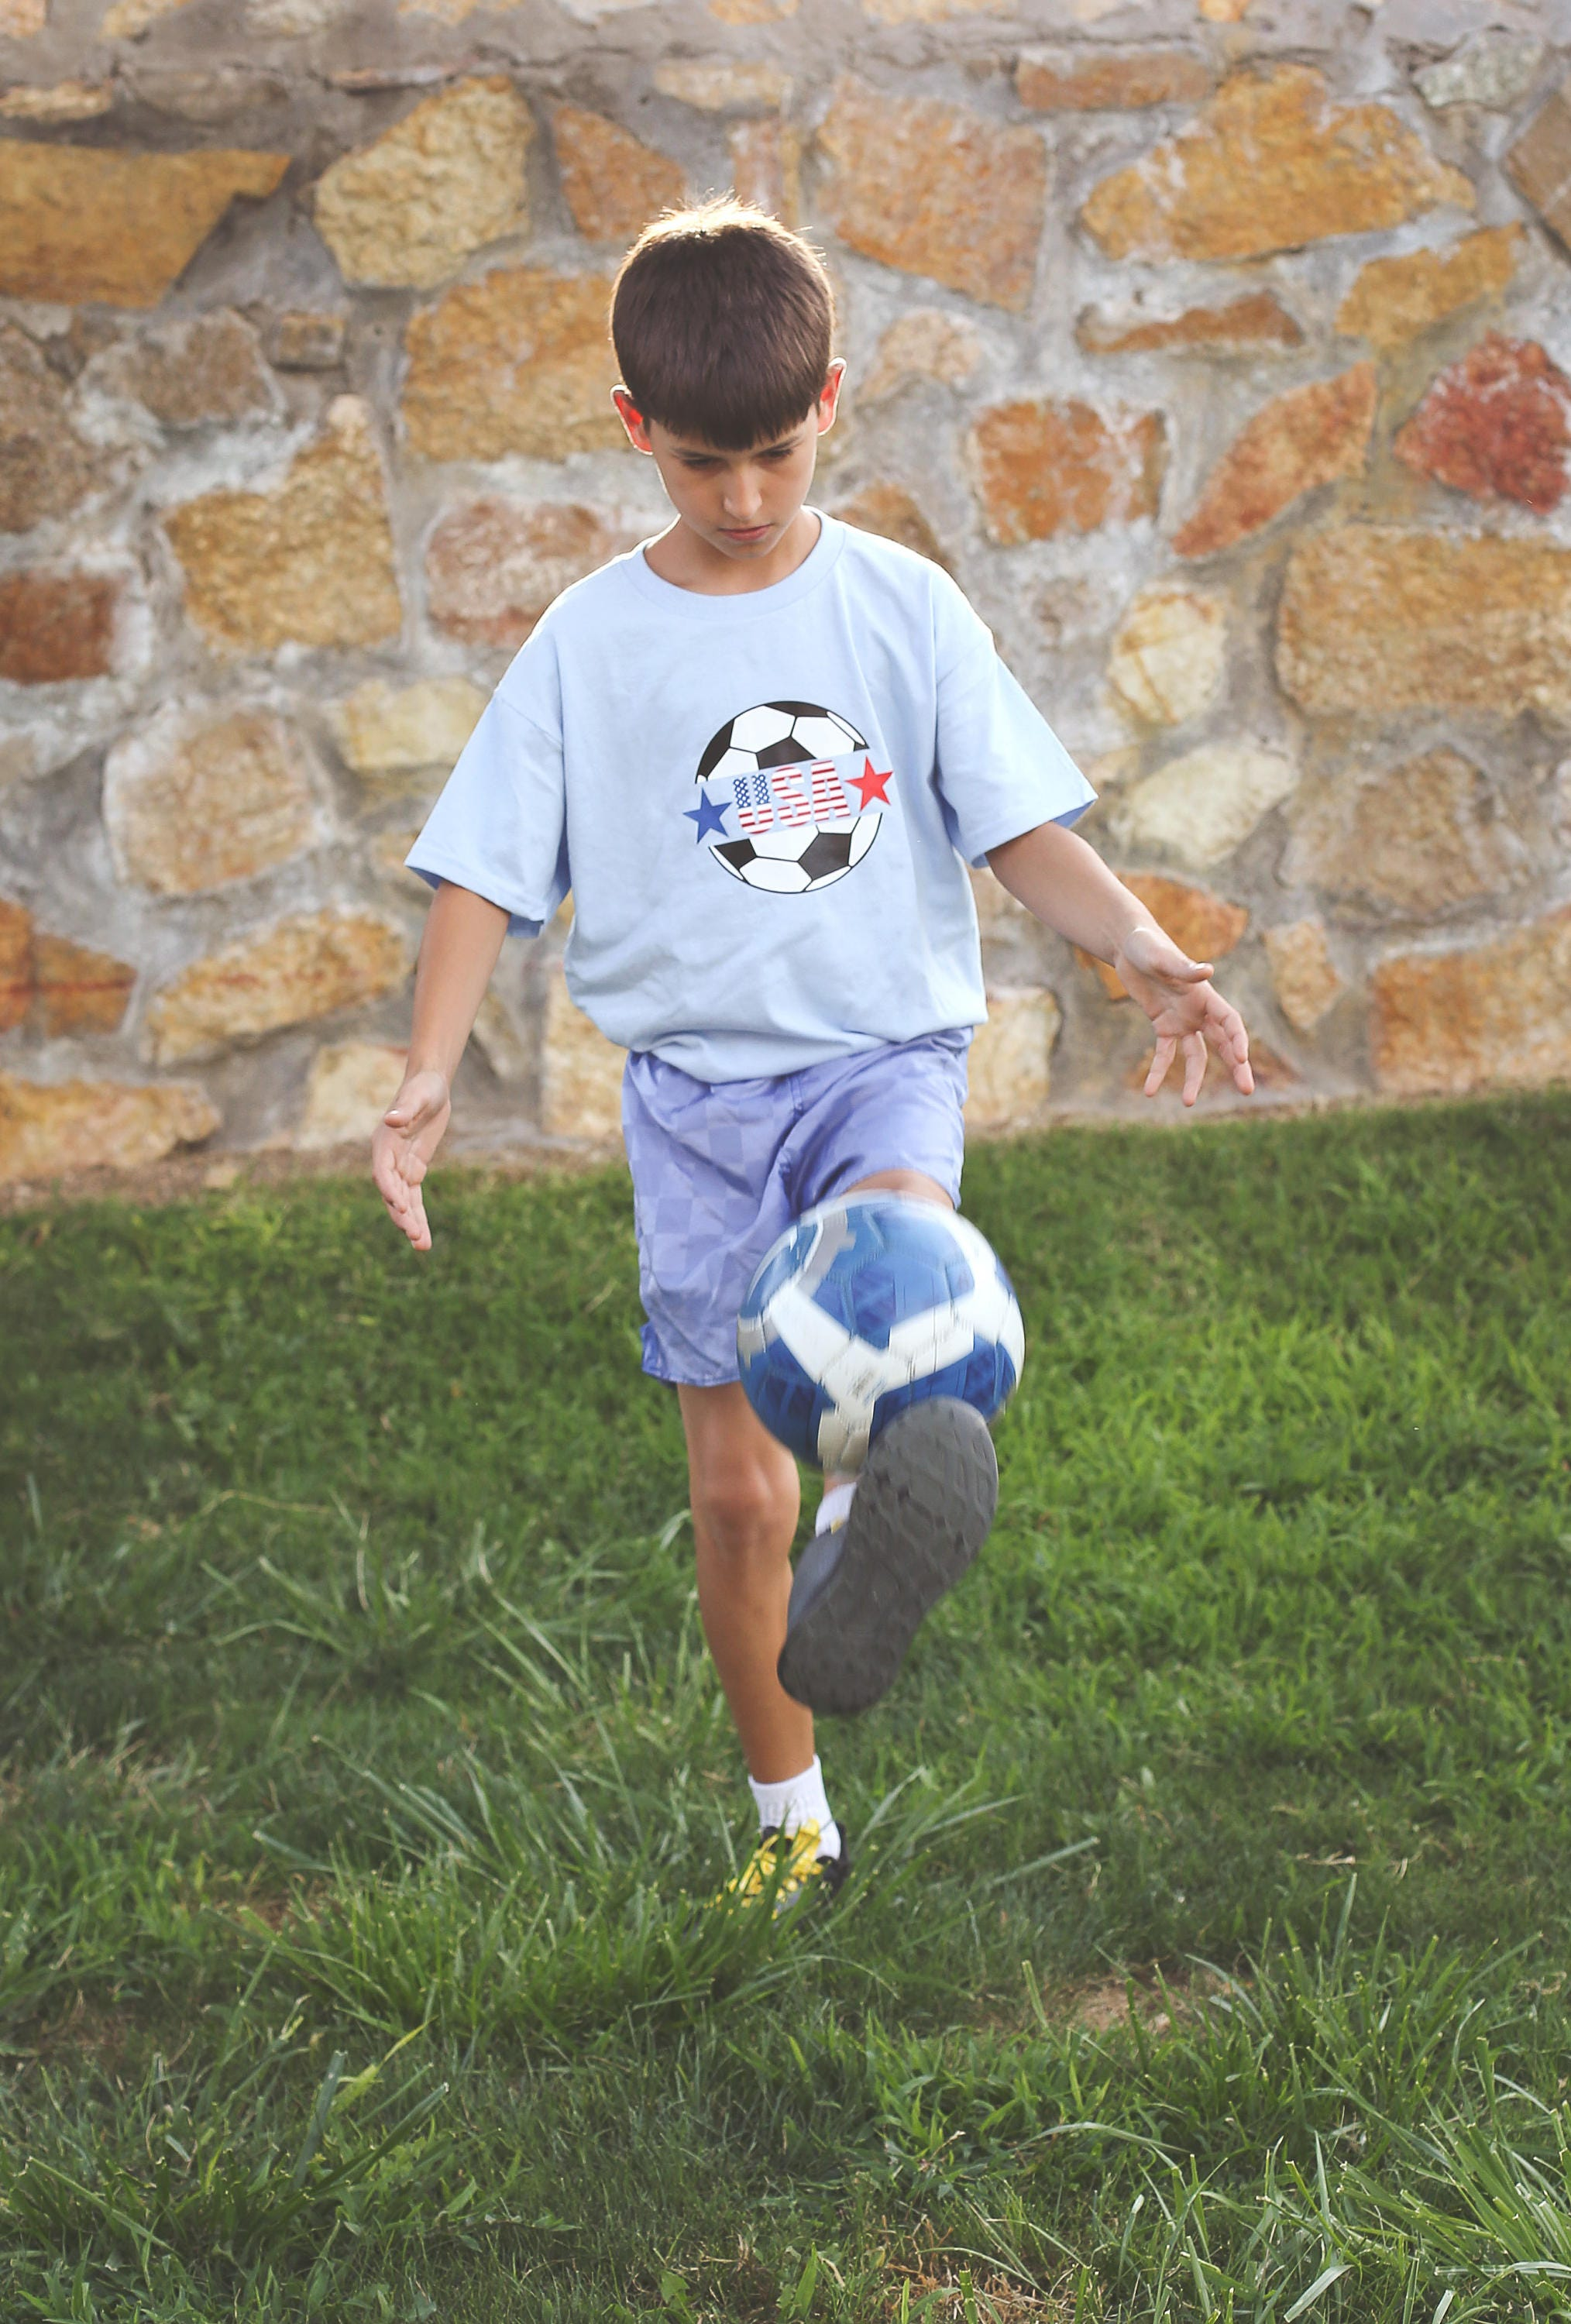 Soccer Team Shirts For Boys - Christmas Gifts For Mom Of Boys ...